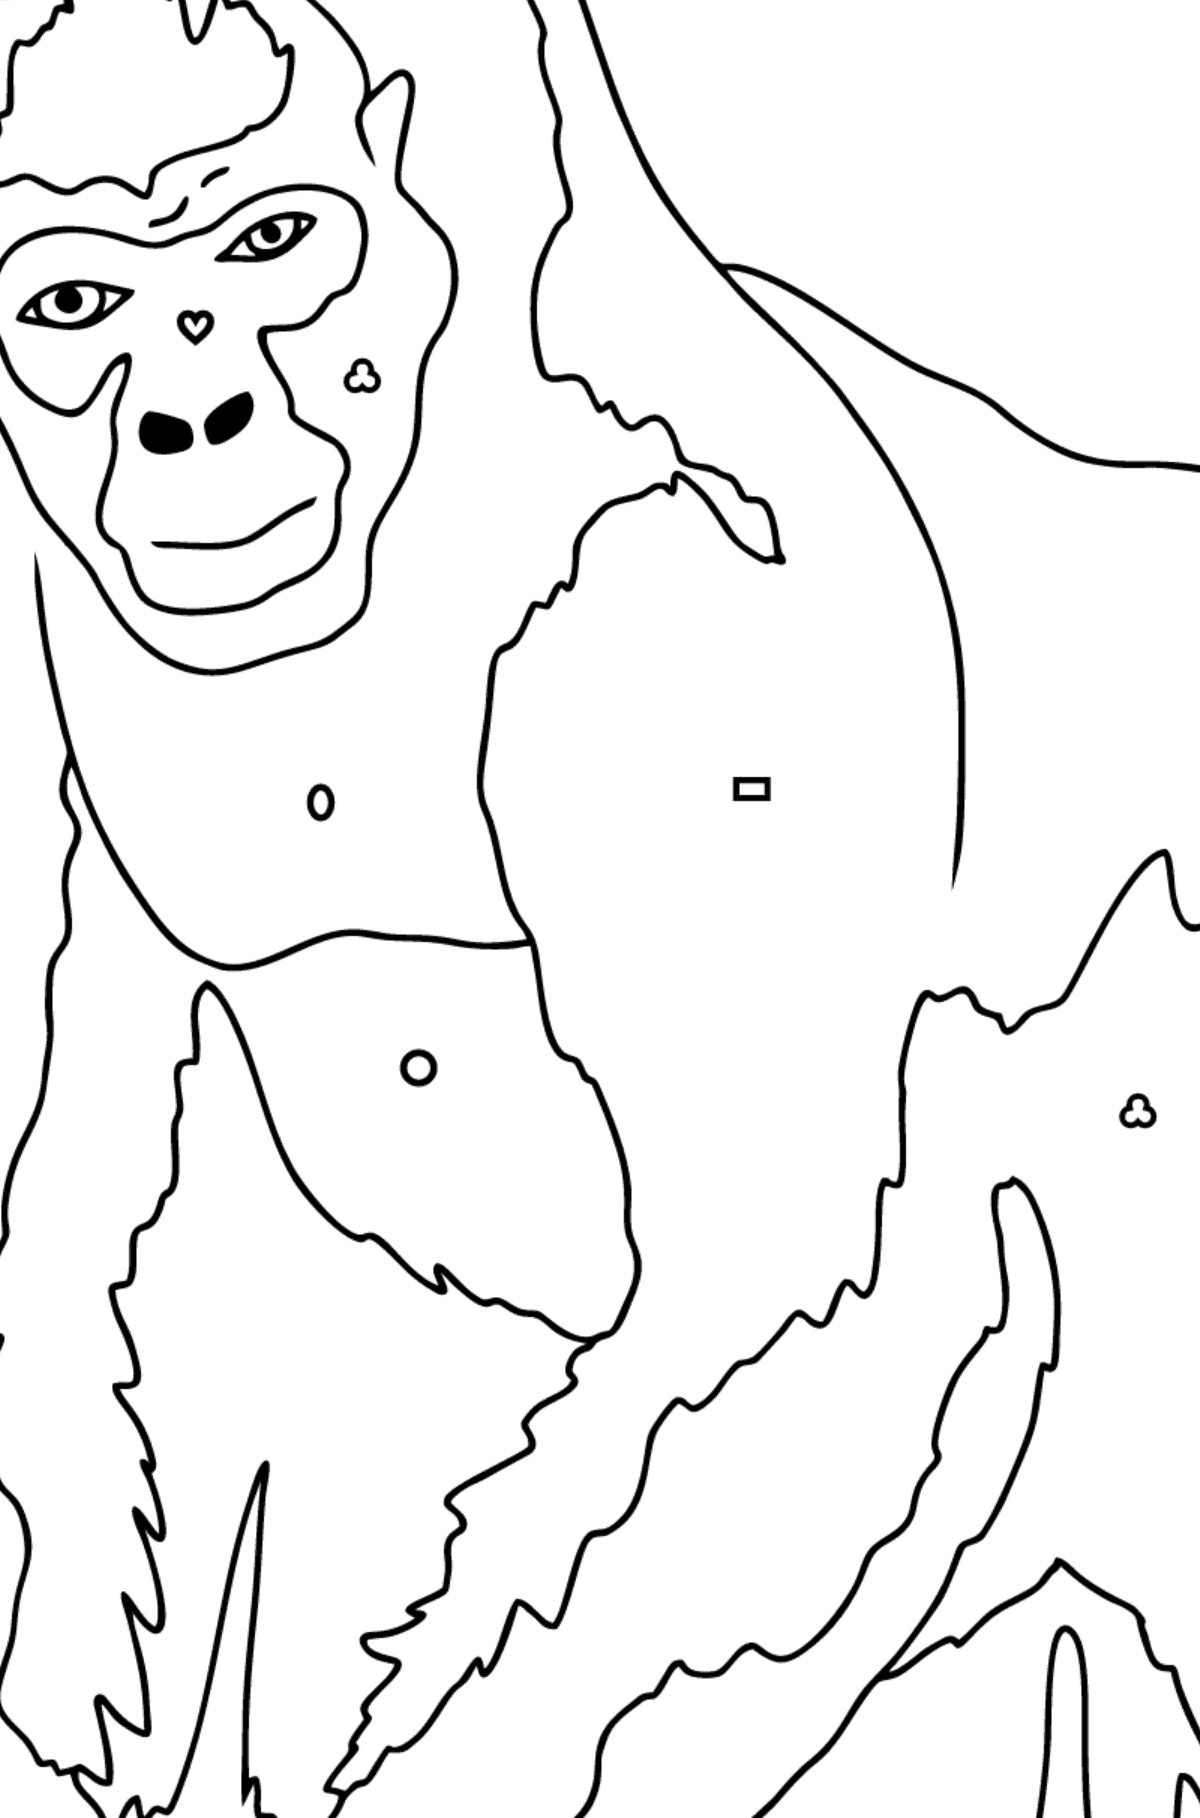 Coloring Page - A Real Gorilla - Coloring by Geometric Shapes for Children